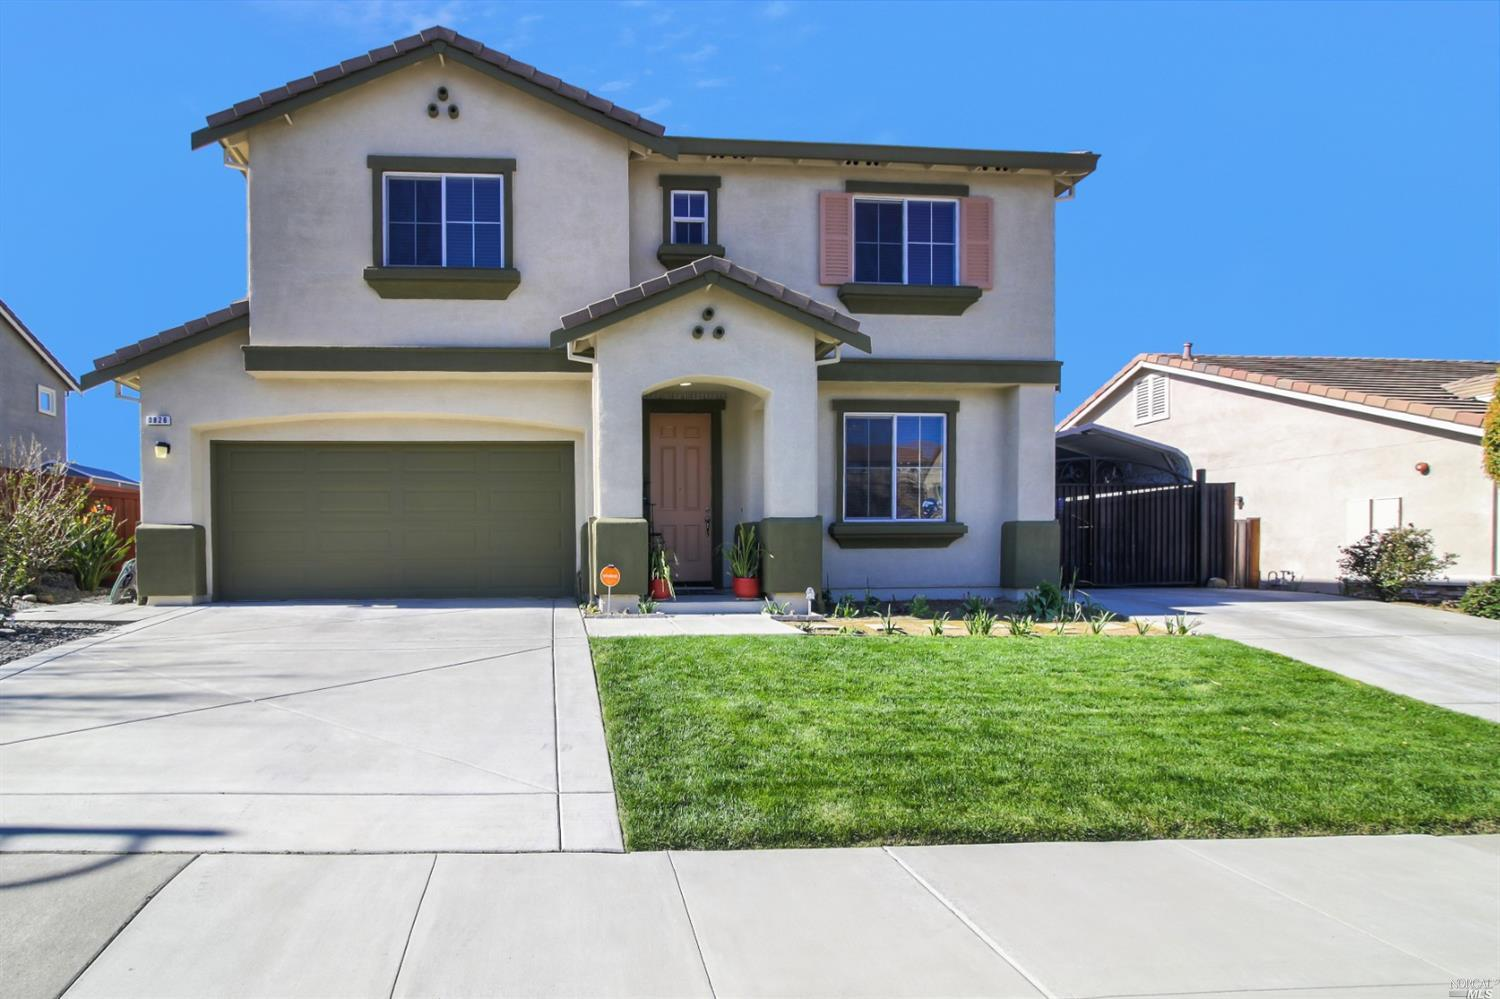 3826 Danbury Way Fairfield Ca 94533 Twin Oaks Real Estate Inc